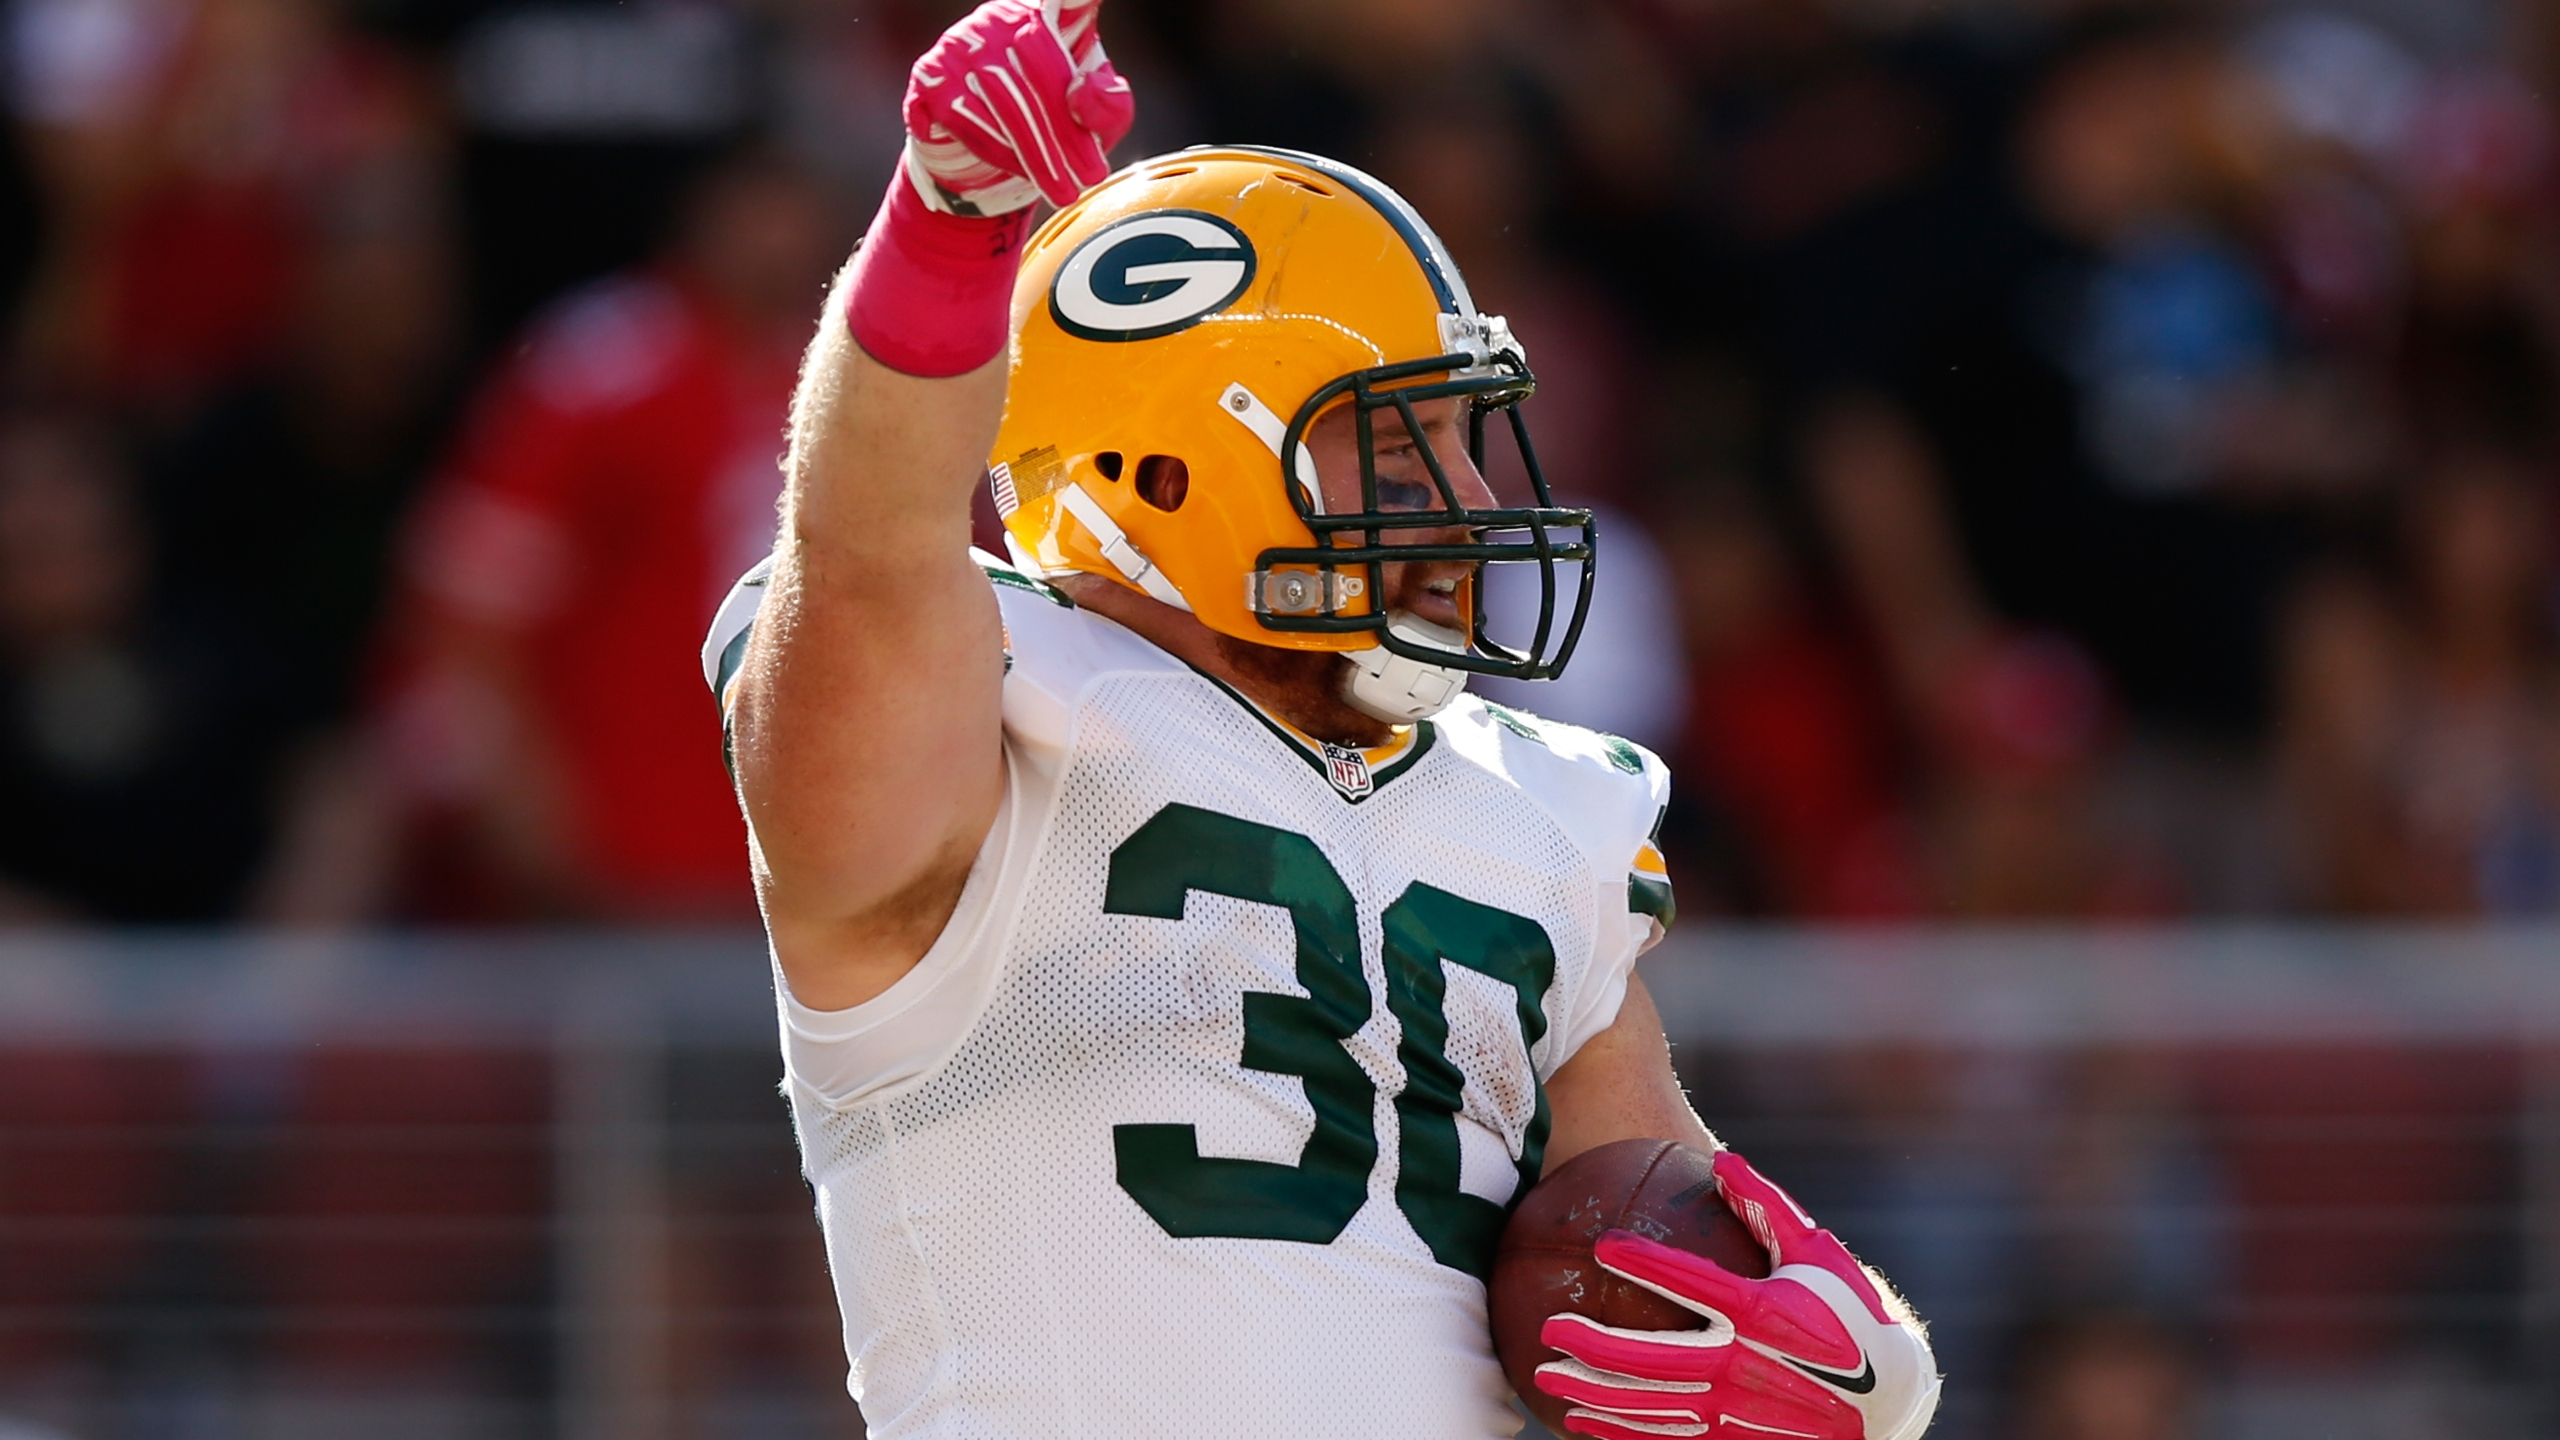 Kuhn retires as a Packer